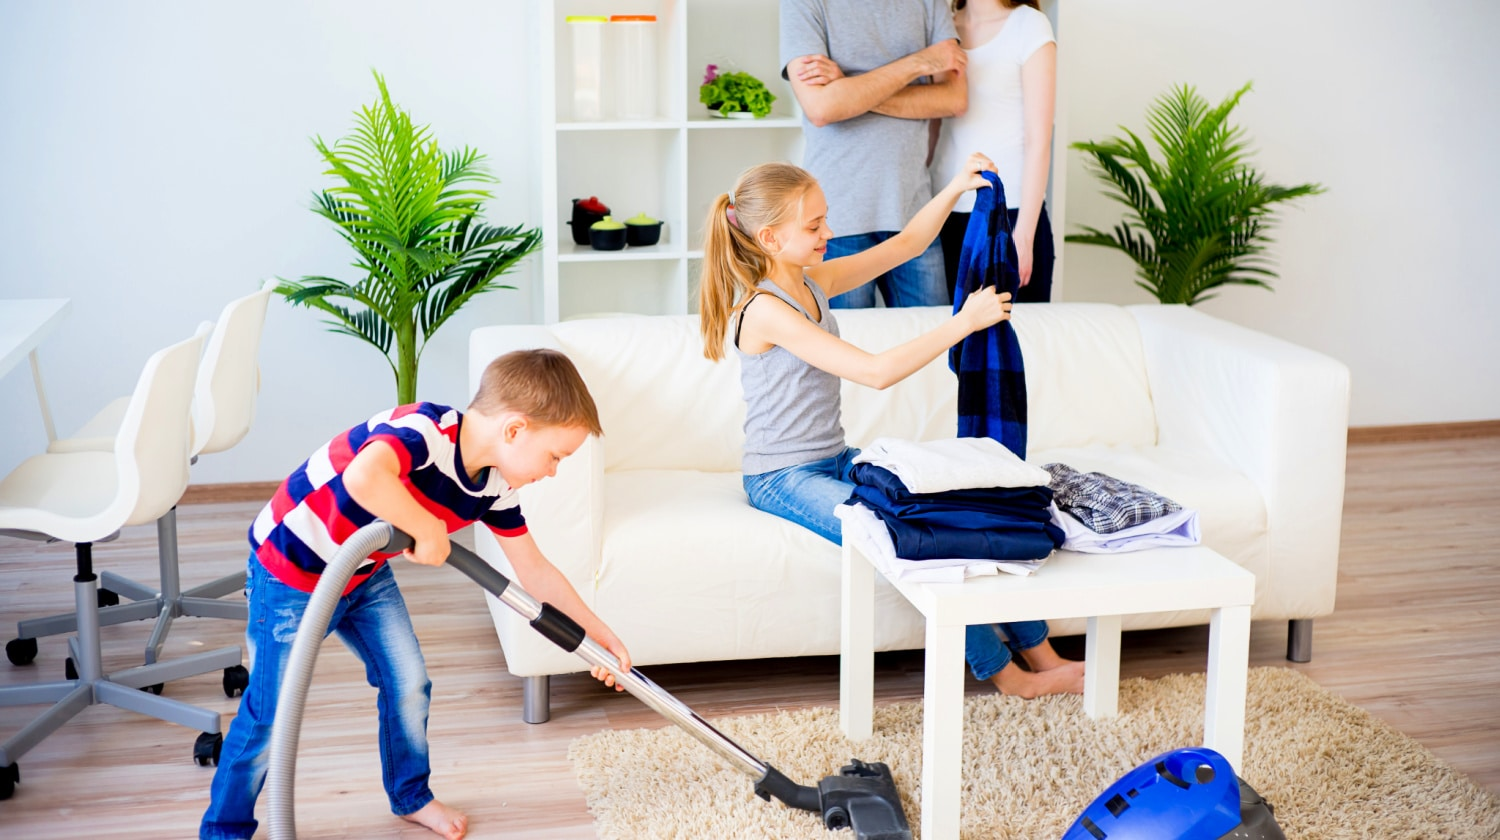 School-age children doing age-appropriate chores around the house while parents watch